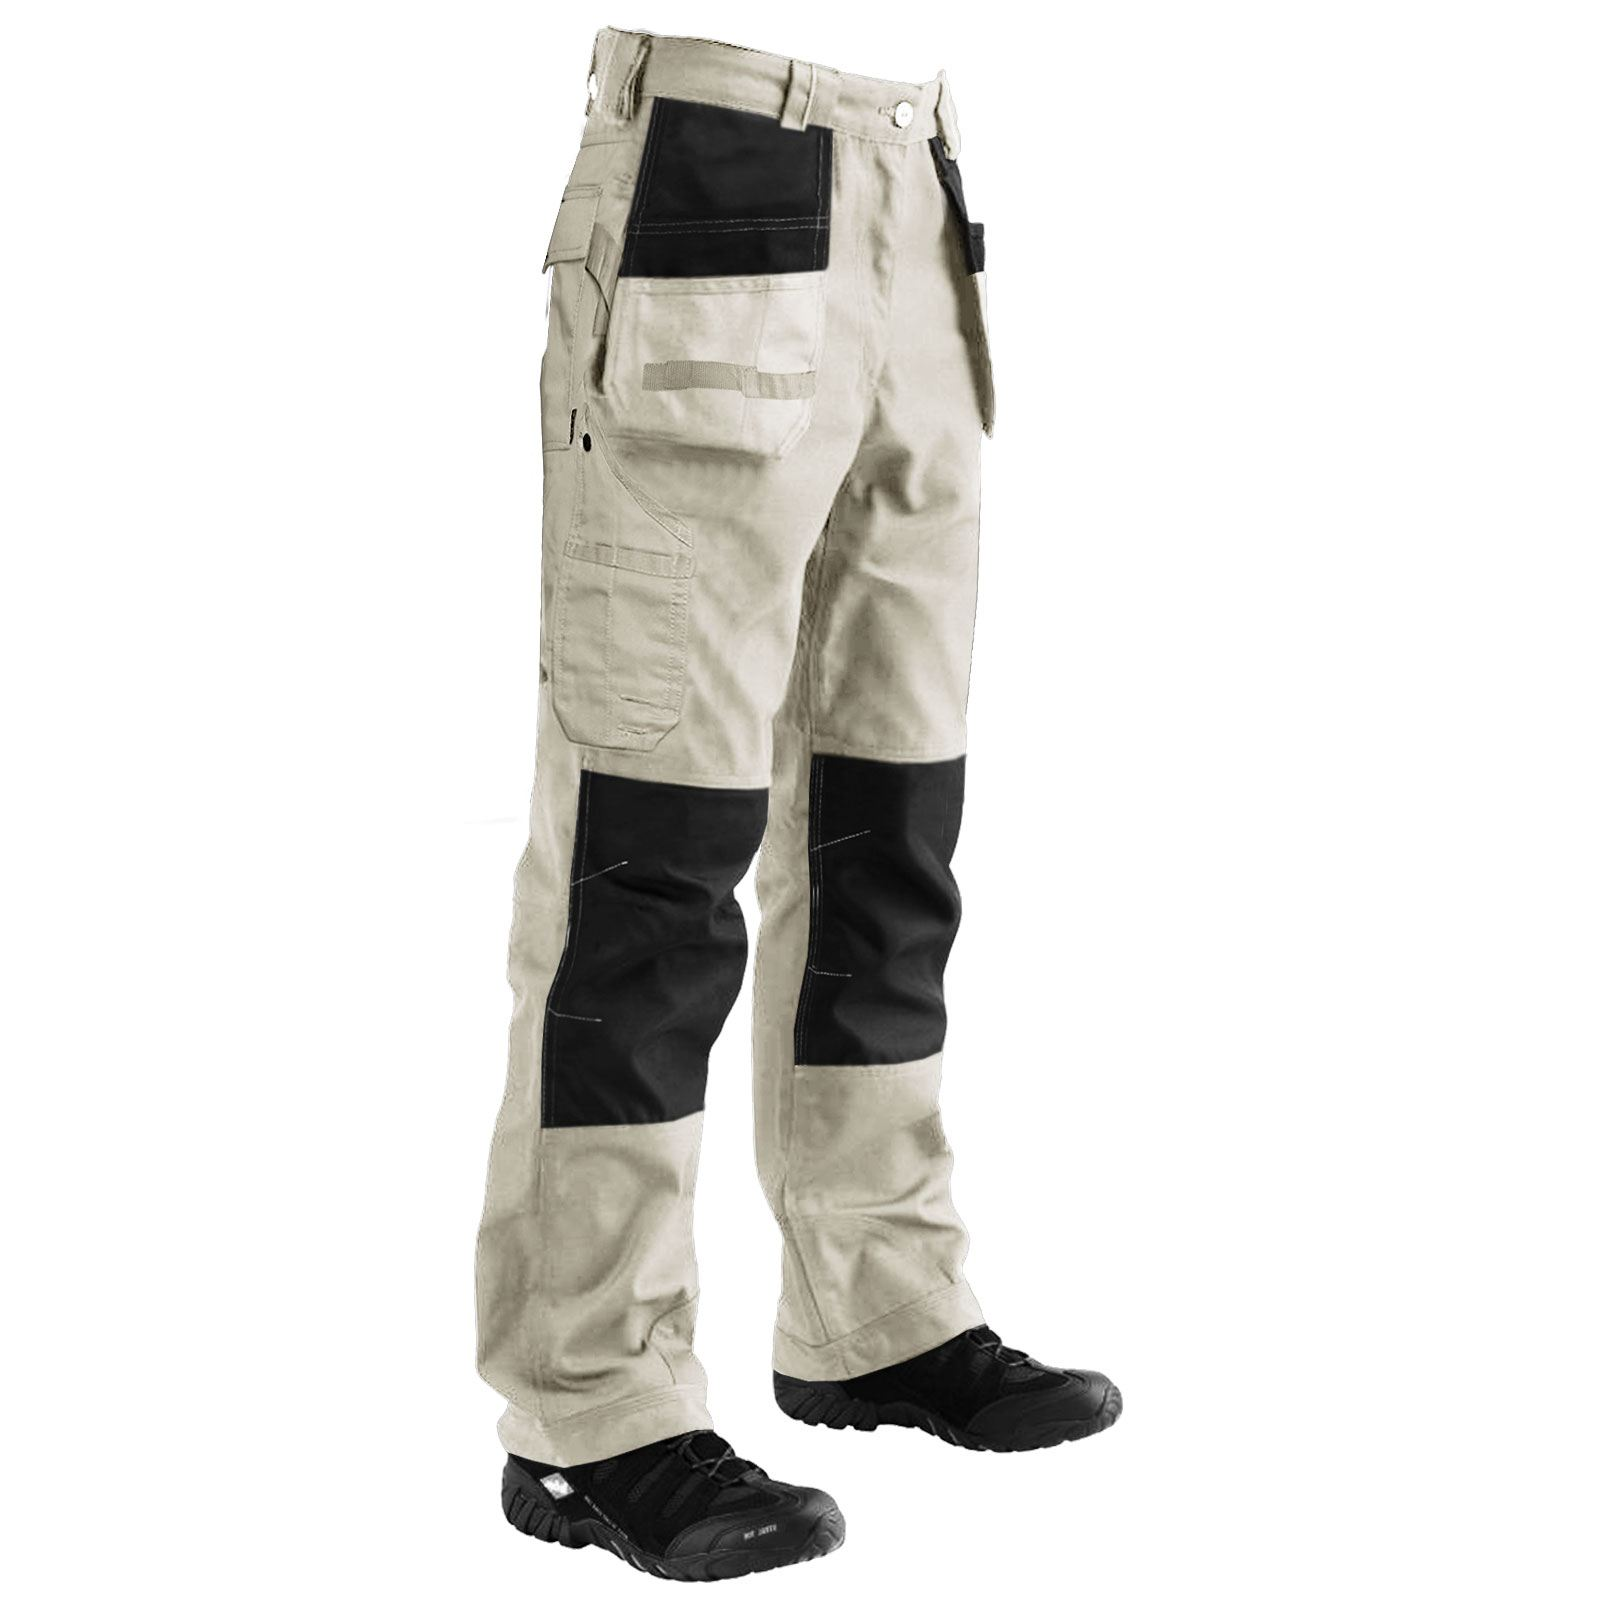 MENS CARGO COMBAT WORK TROUSERS WITH KNEE PAD POCKETS WORKER HEAVY DUTY PANTS